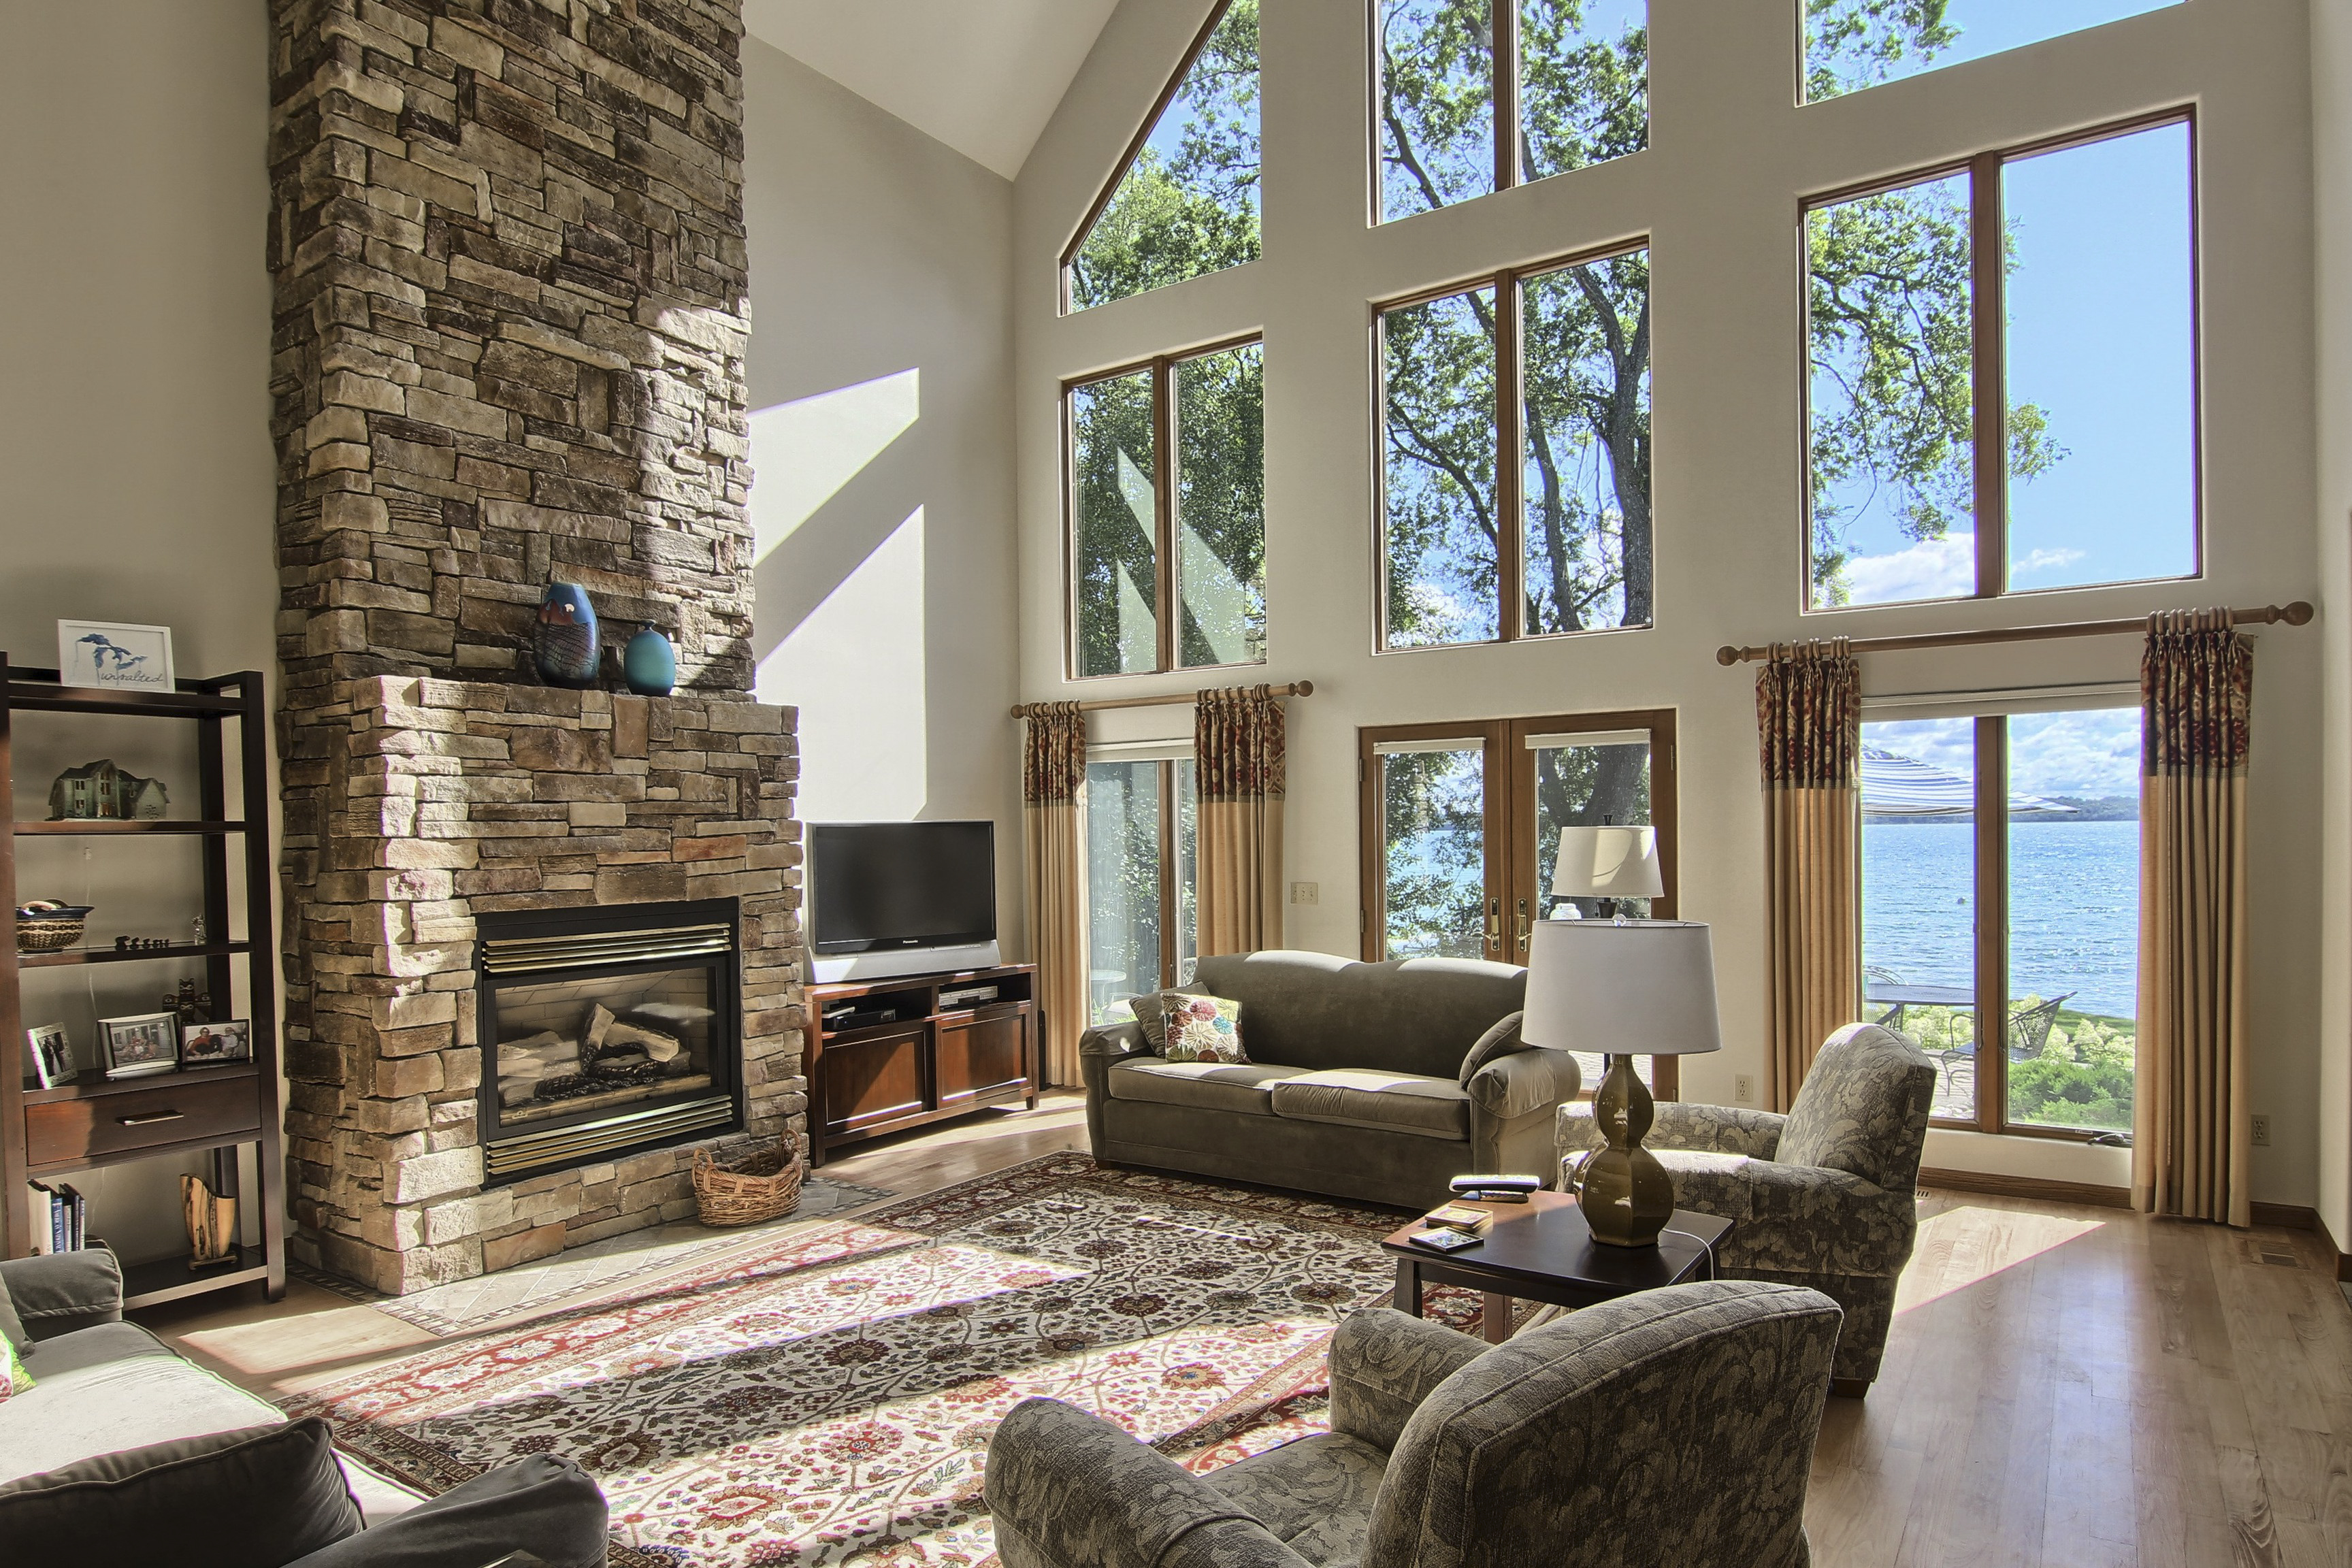 Vacation Rental Photography